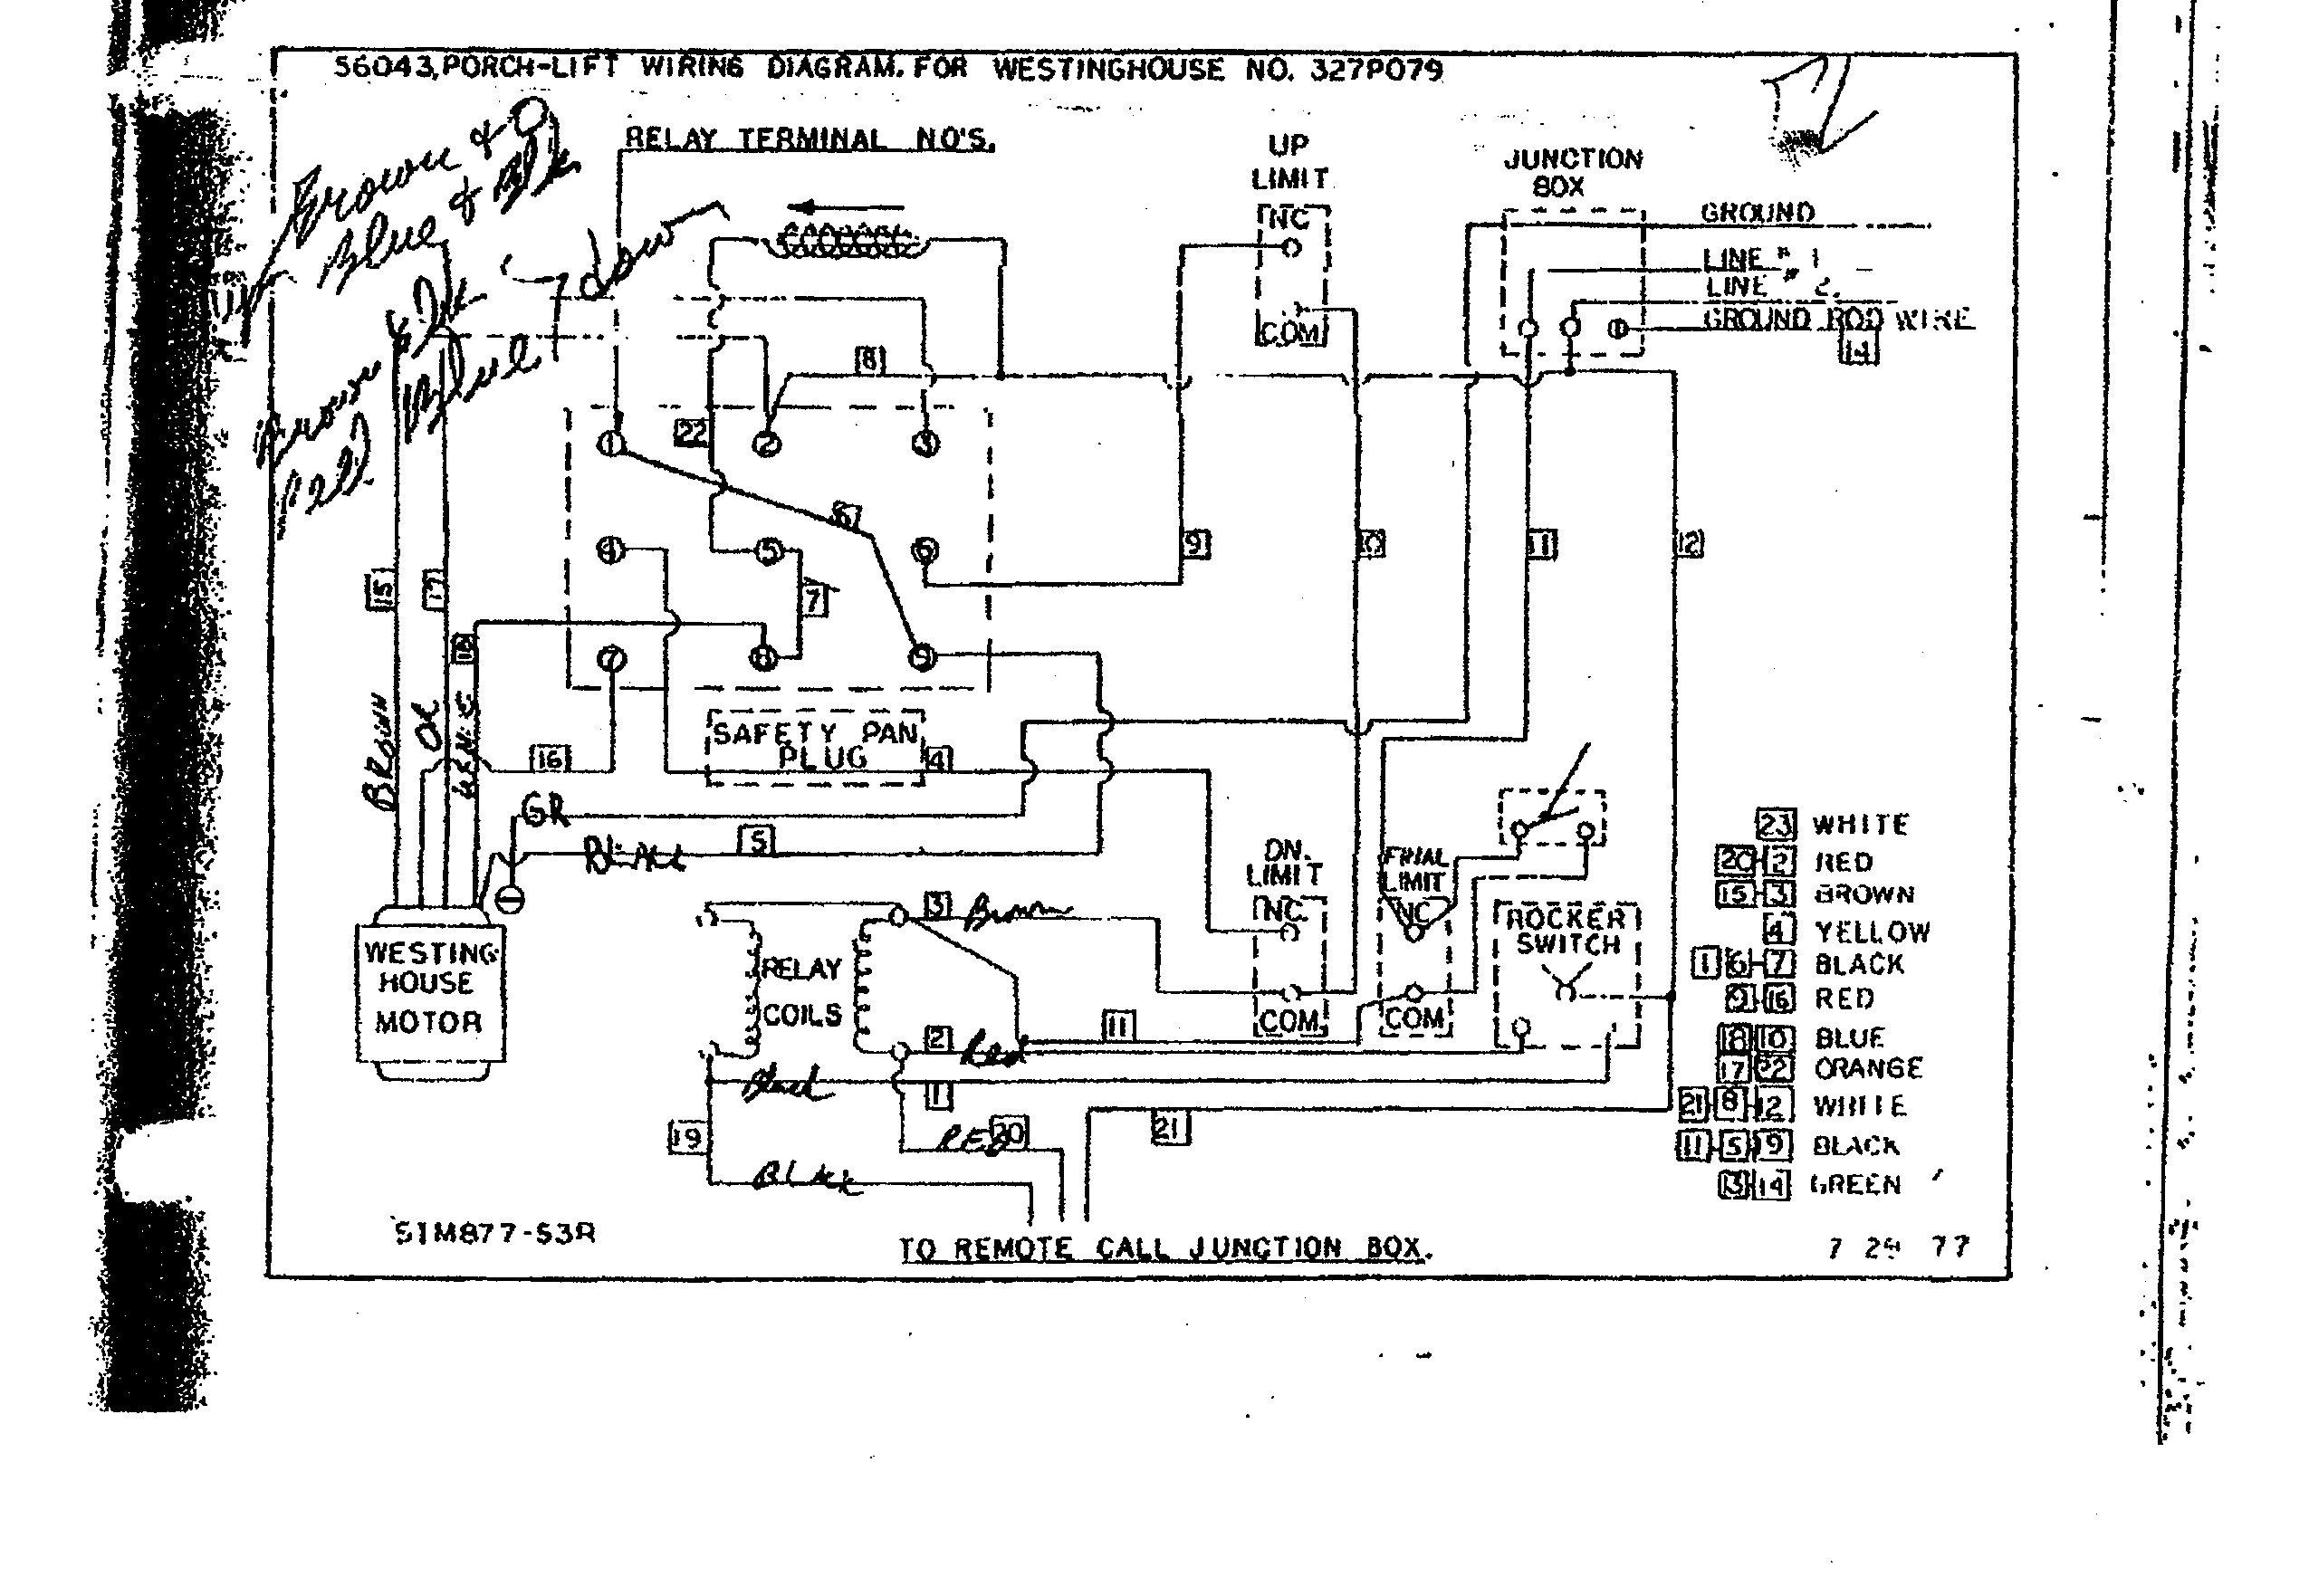 2011 01 04_160748_thyssenkrupp who where can i get help with westinghouse motor wiring? westinghouse motor wiring diagram at eliteediting.co